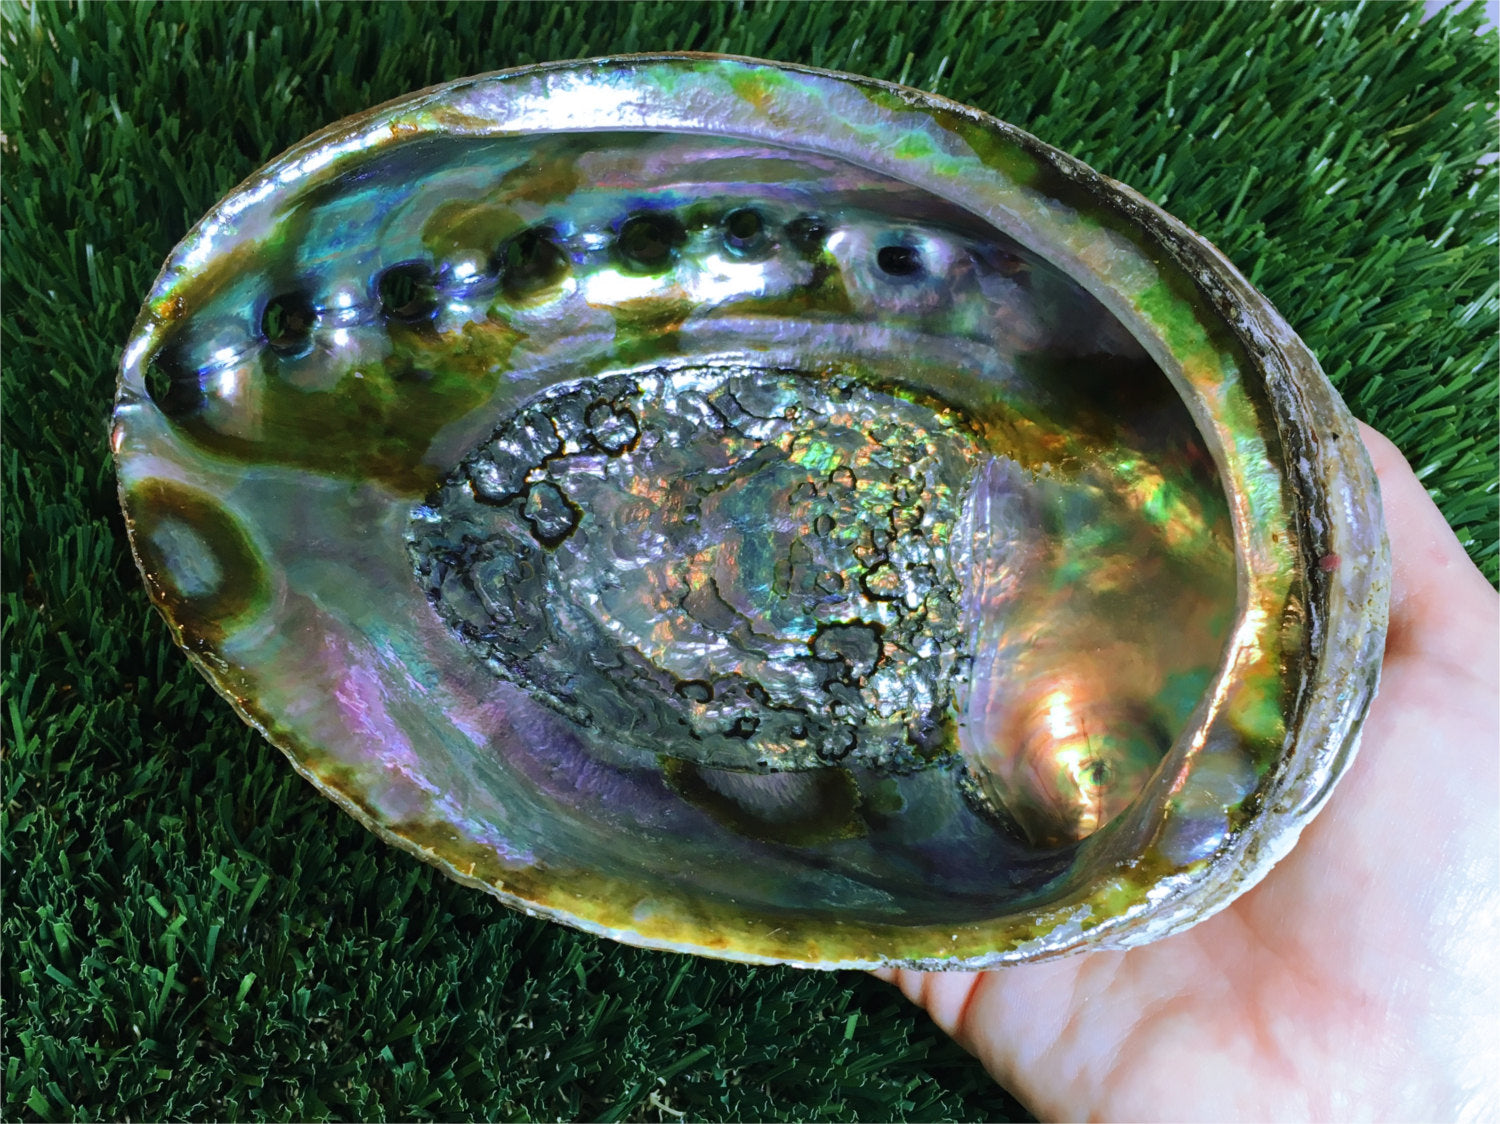 "6 - 6 & 1/2"" Large Abalone Shell - Great as a smudging bowl"